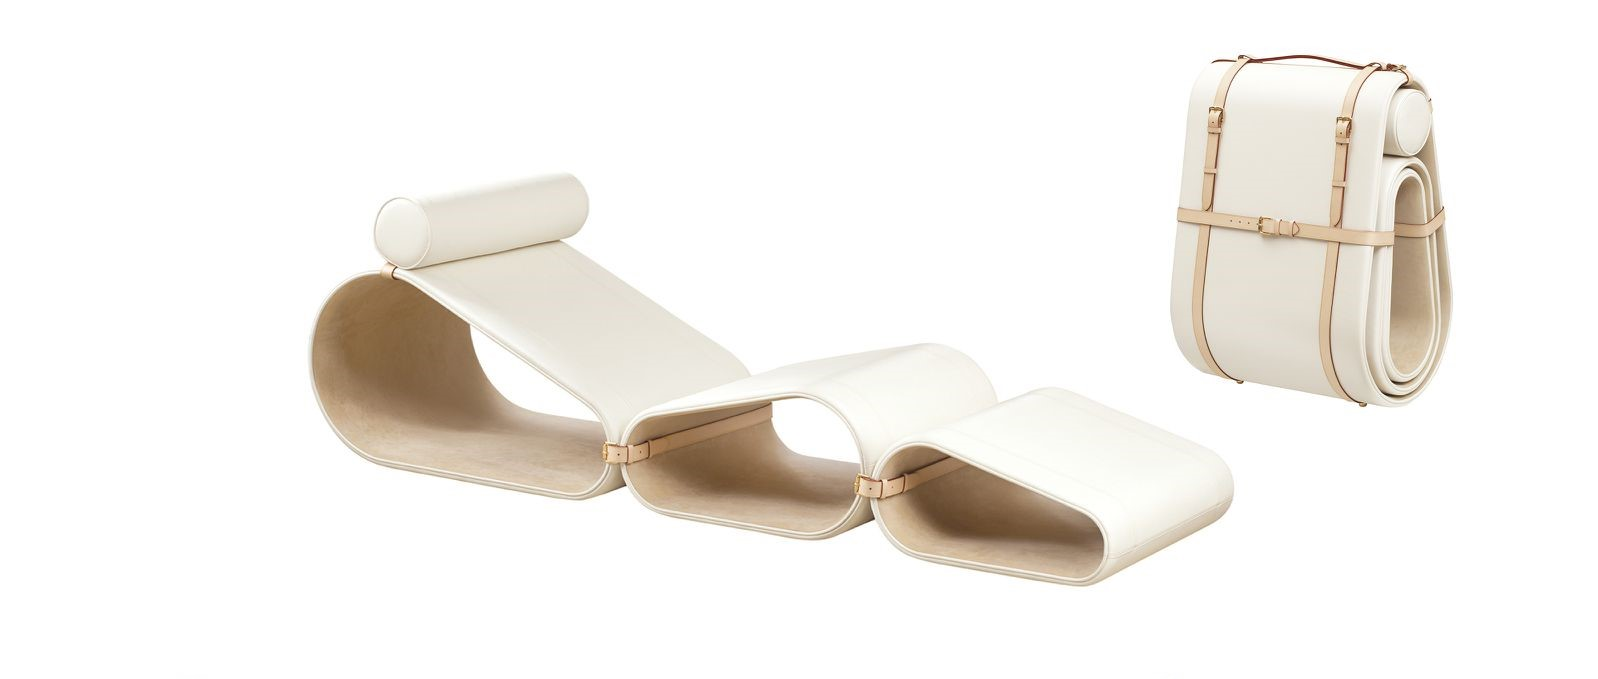 Louis Vuitton Objets Nomades Lounge Chair by Marcel Wanders (photo: courtesy).